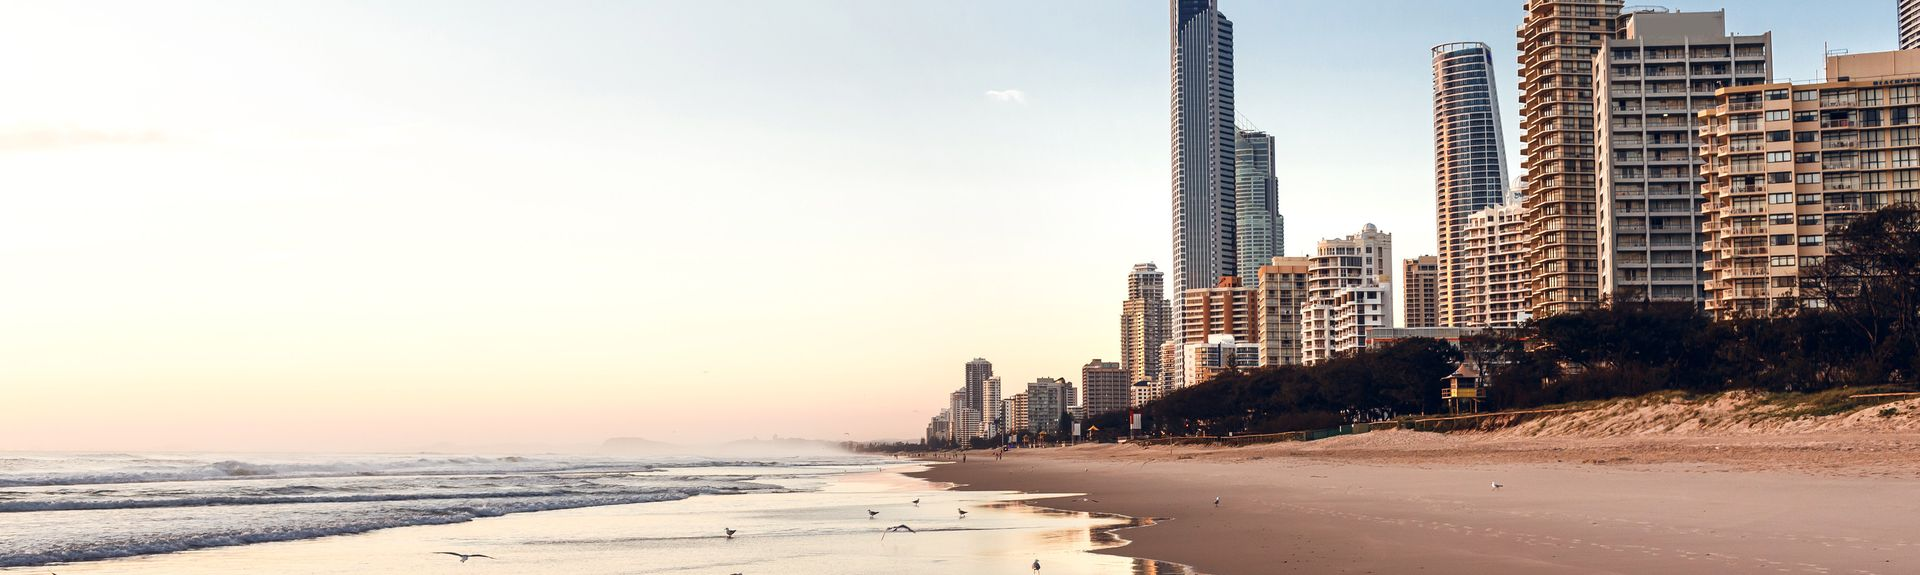 Broadbeach, Gold Coast, Queensland, Australia